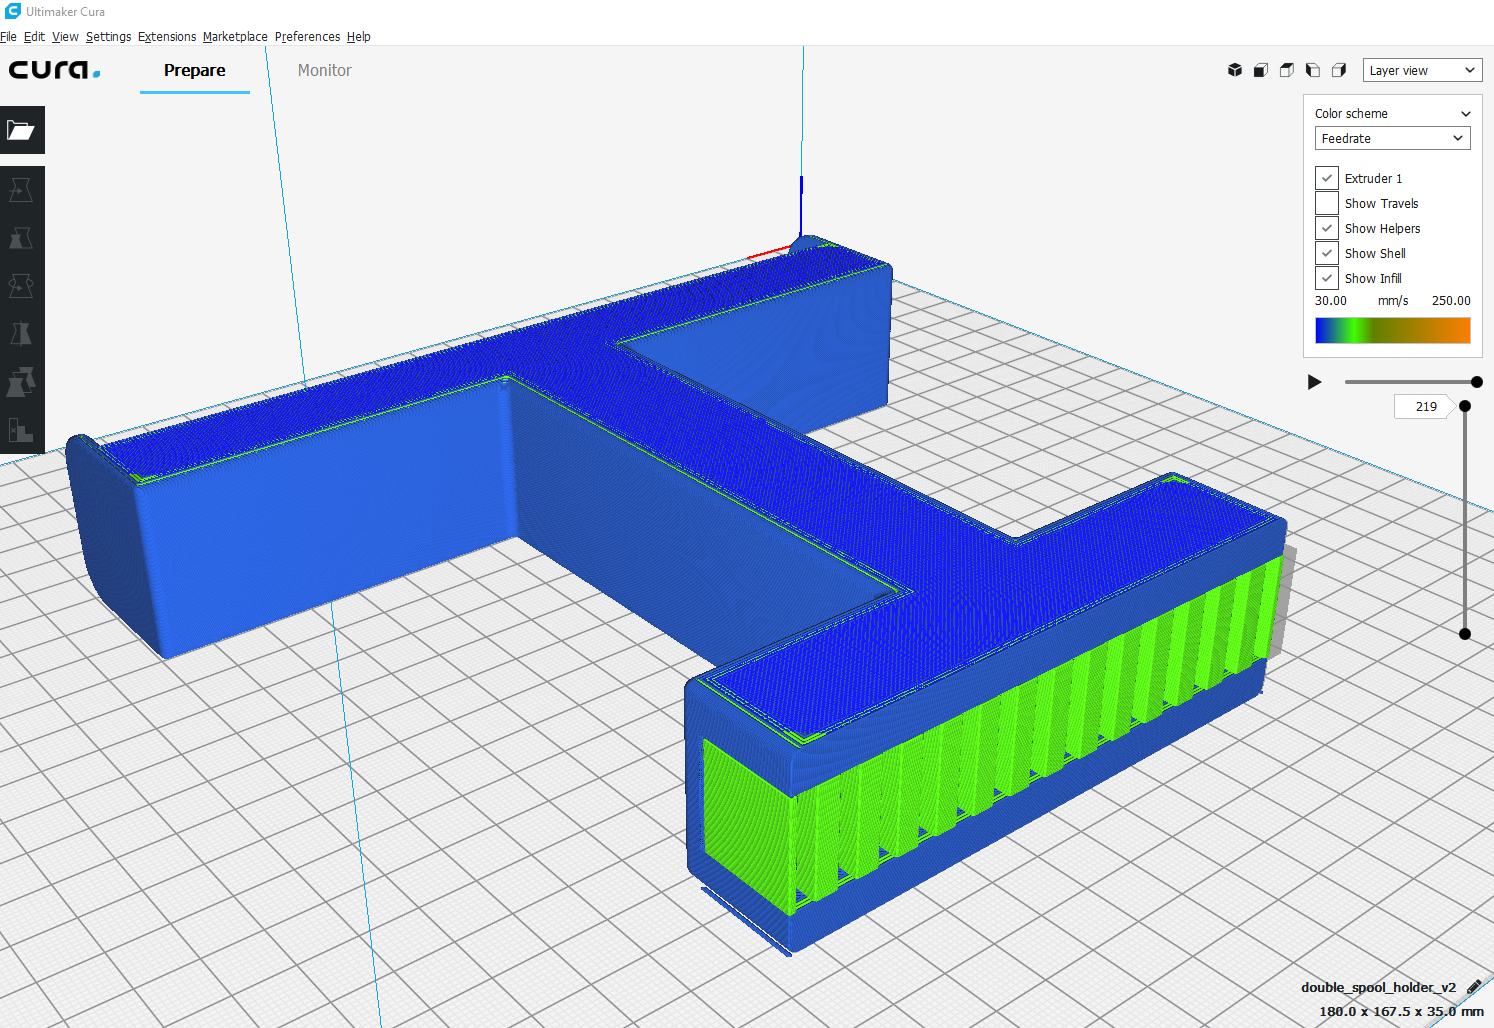 2019-08-09_18_07_19-Window.png Download free STL file Double Spool Holder • 3D printable object, helmuteder